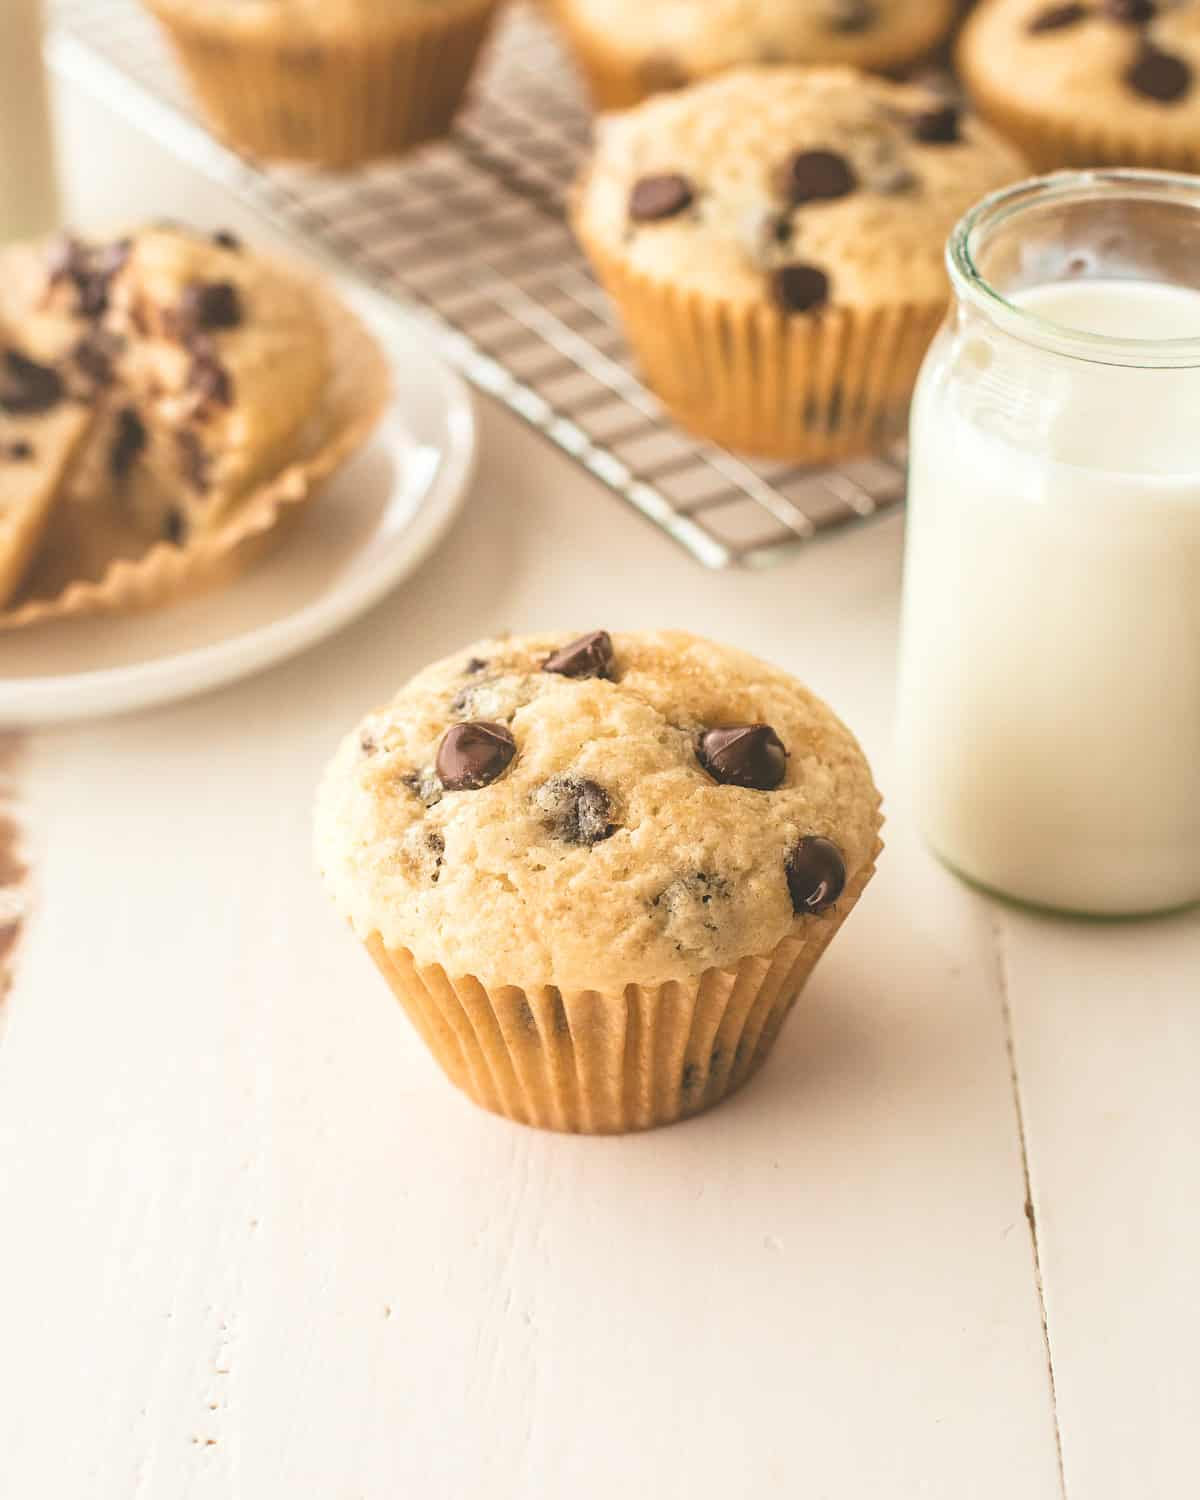 a chocolate chip muffin on a white table